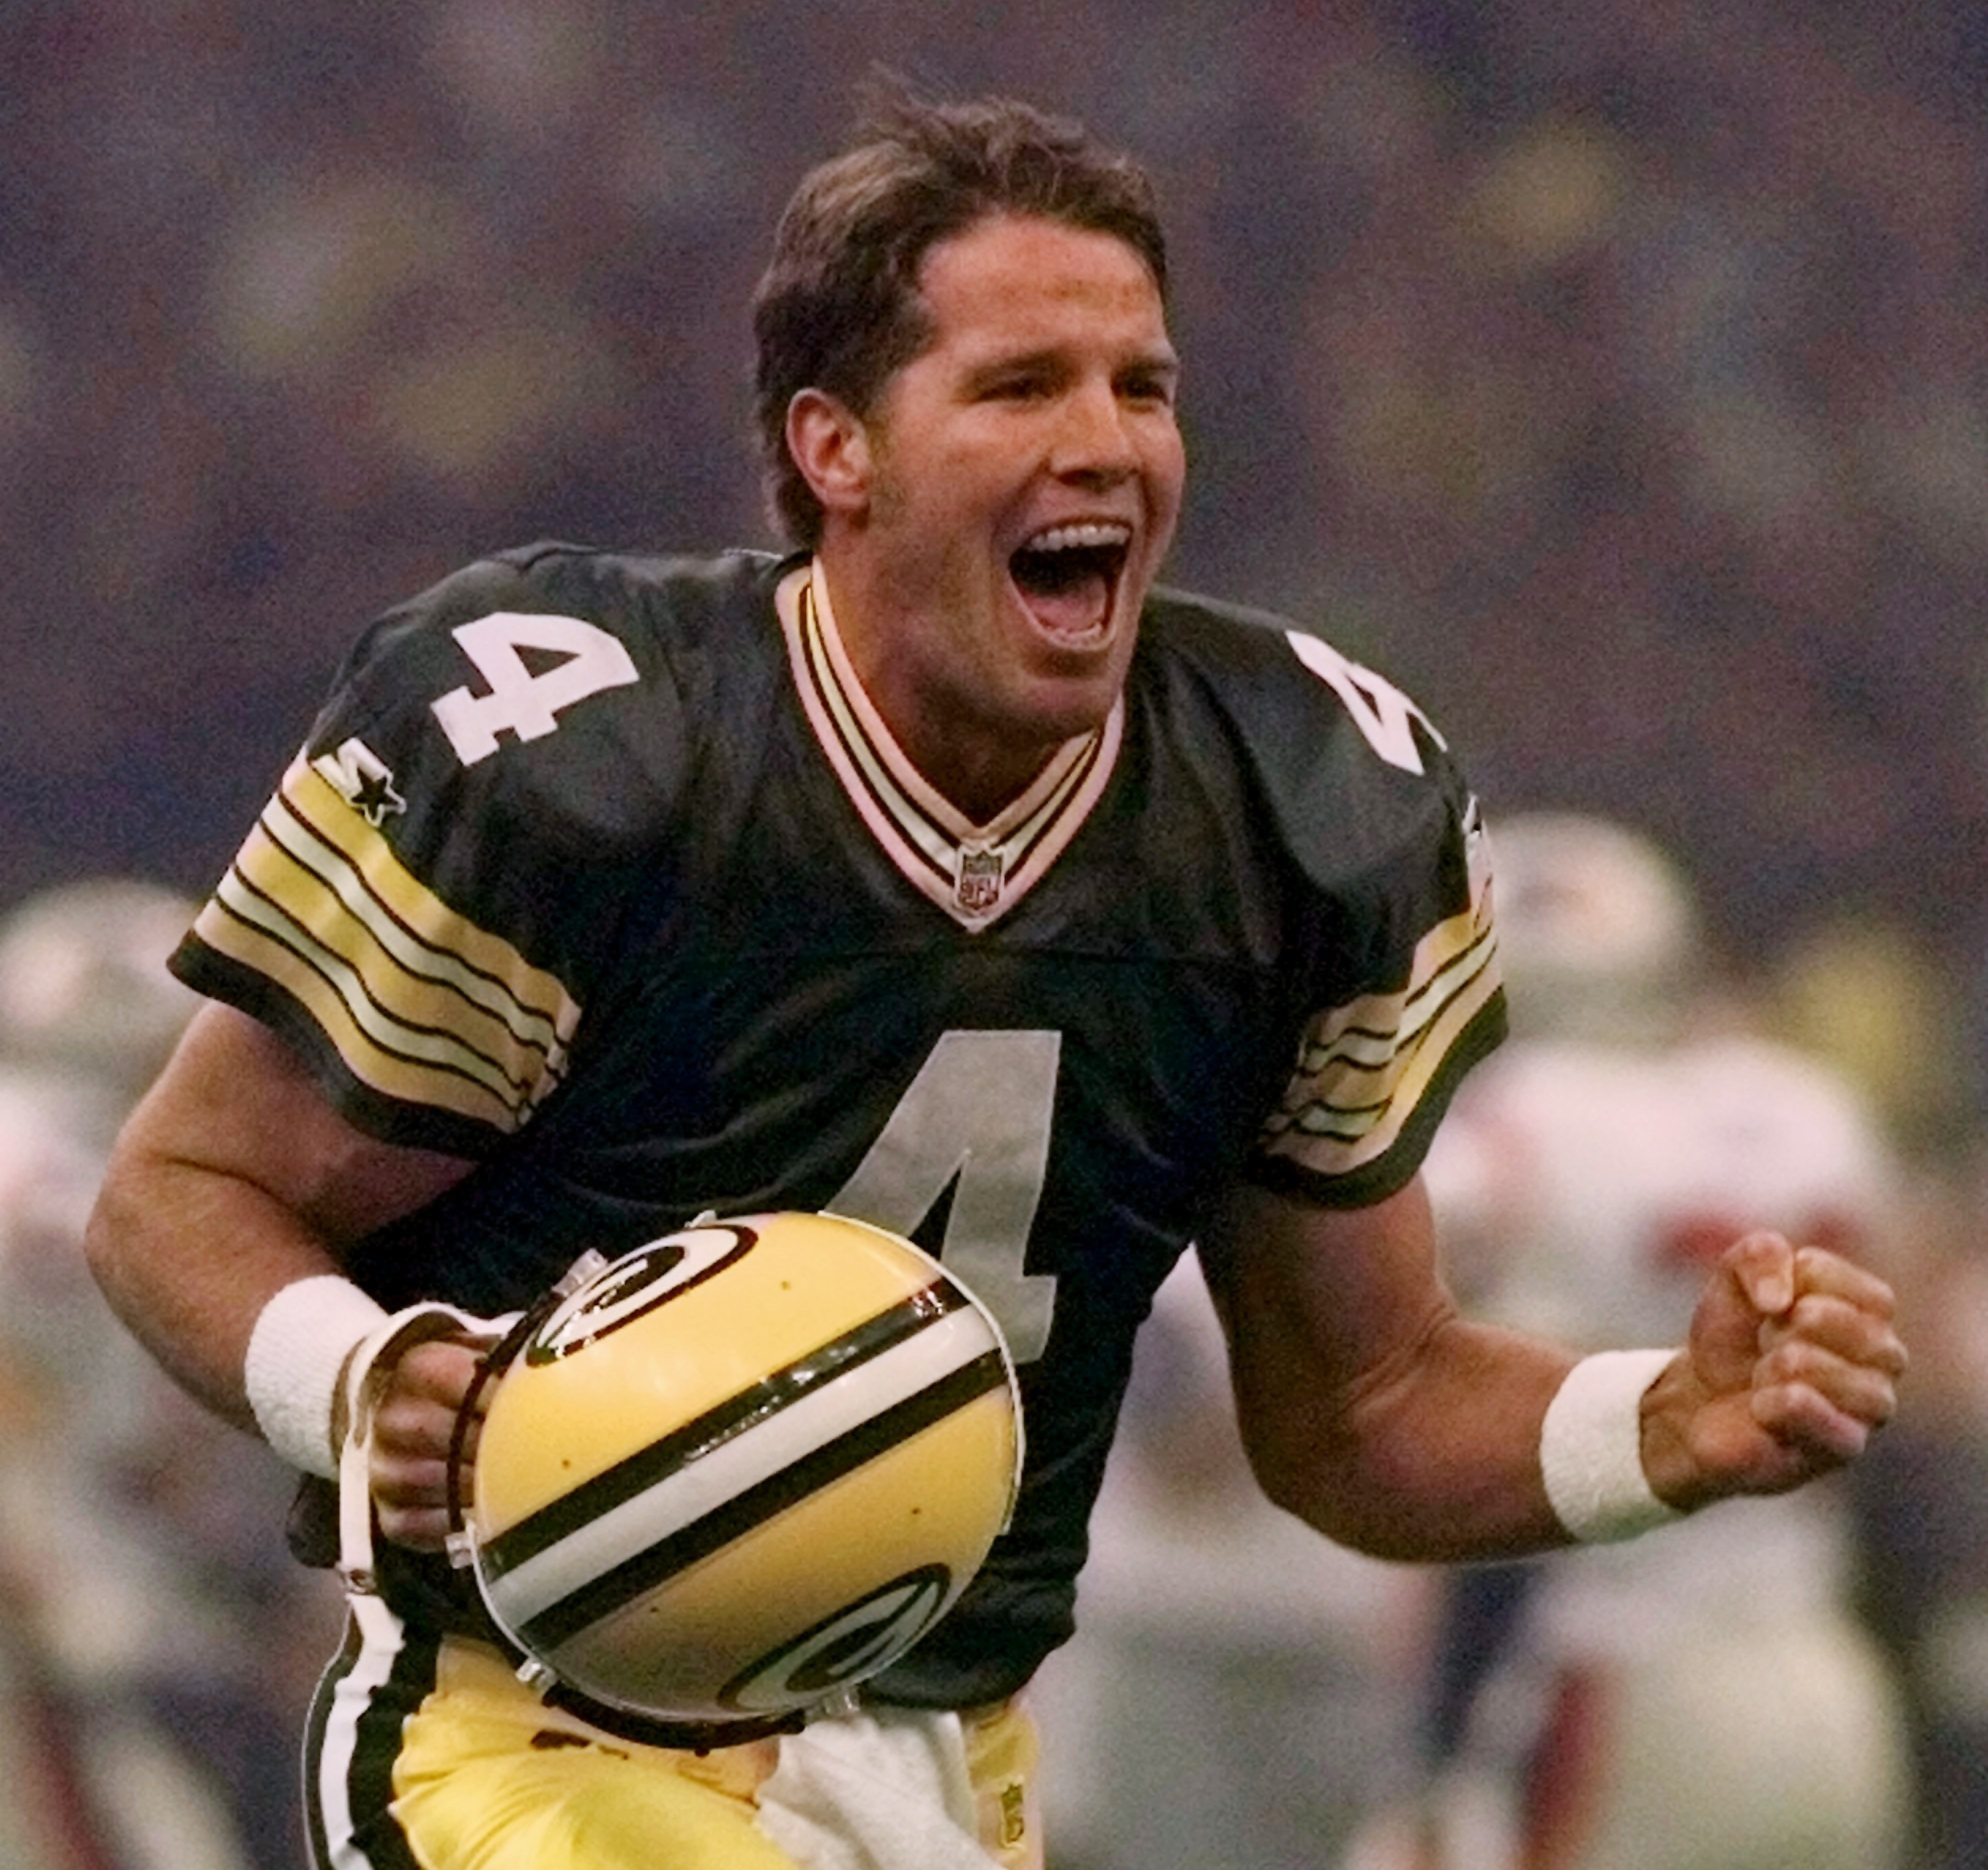 FILE - In this Jan. 26, 1997, file photo, Green Bay Packers quarterback Brett Favre celebrates after throwing a touchdown pass to Andre Rison during the Super Bowl in New Orleans. Favre was equal parts desperado and virtuoso during his 20-year NFL career